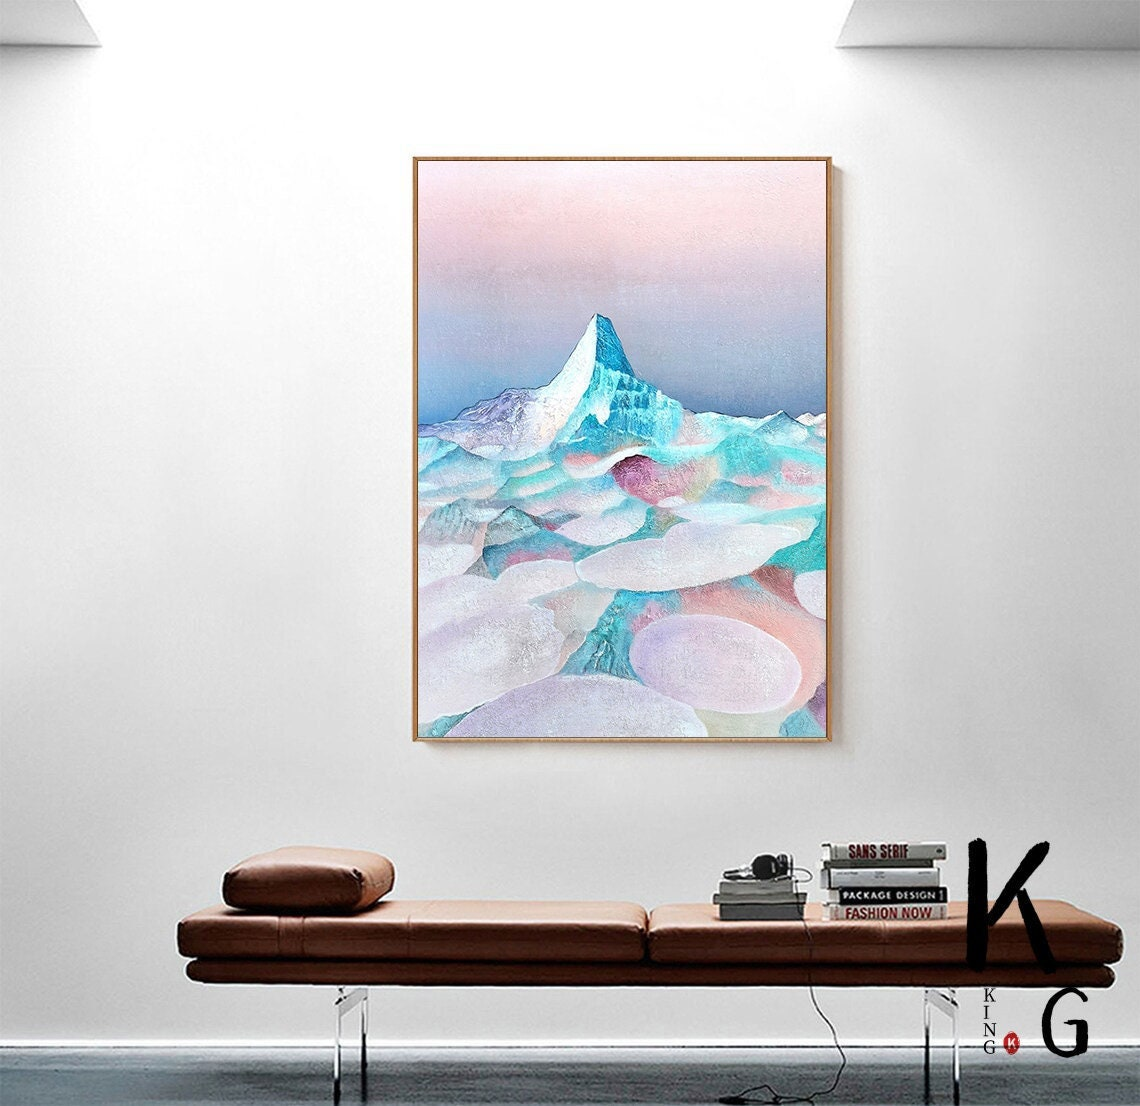 Excited to share the latest addition to my #etsy shop: Lrage Original Abstract Painting,Mountain Painting,Original Art,landscape Painting,Acrylic Painting,Landscape Impasto Oil Painting on Canvas  #office #fabric #abstract #fashion #contemporary